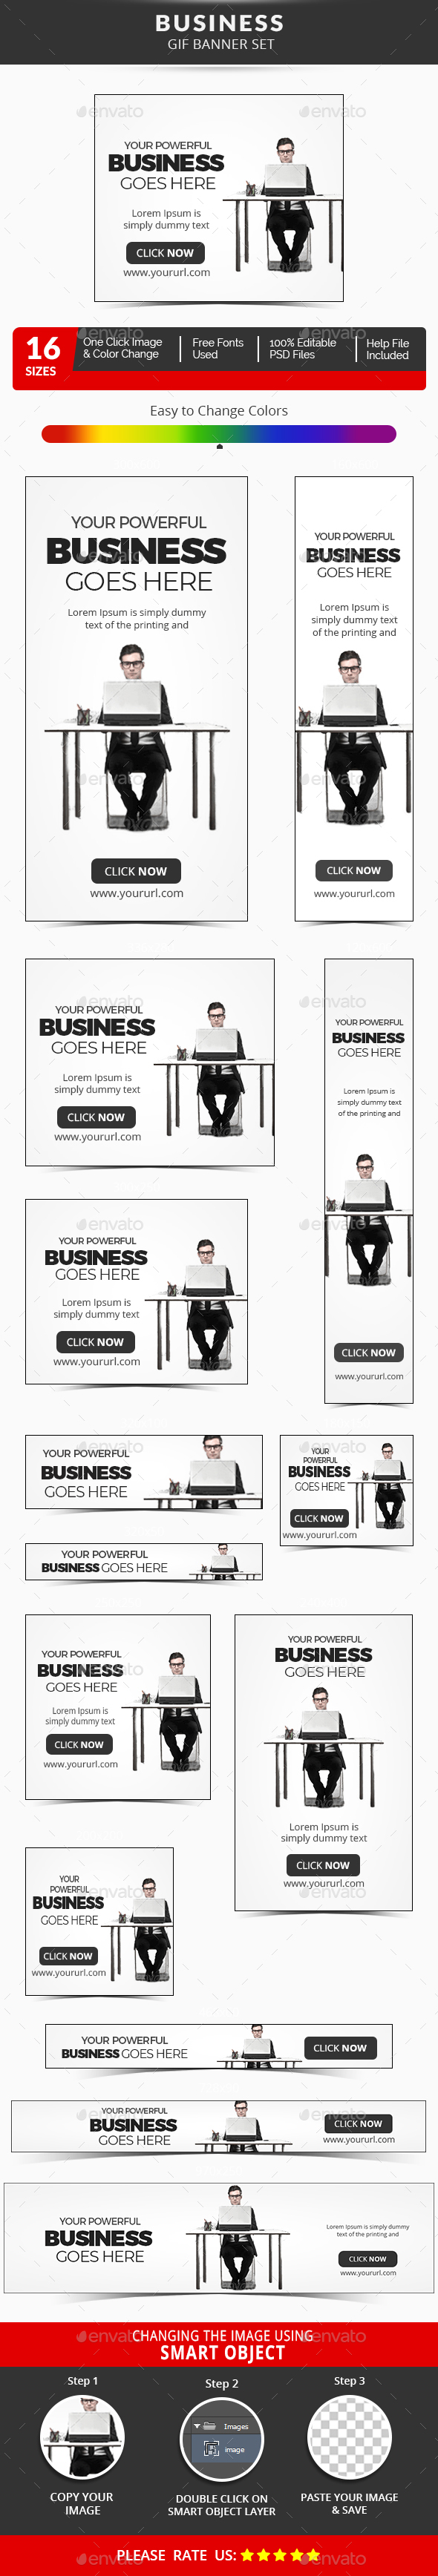 Business Animated GIF Banner Set - Banners & Ads Web Elements